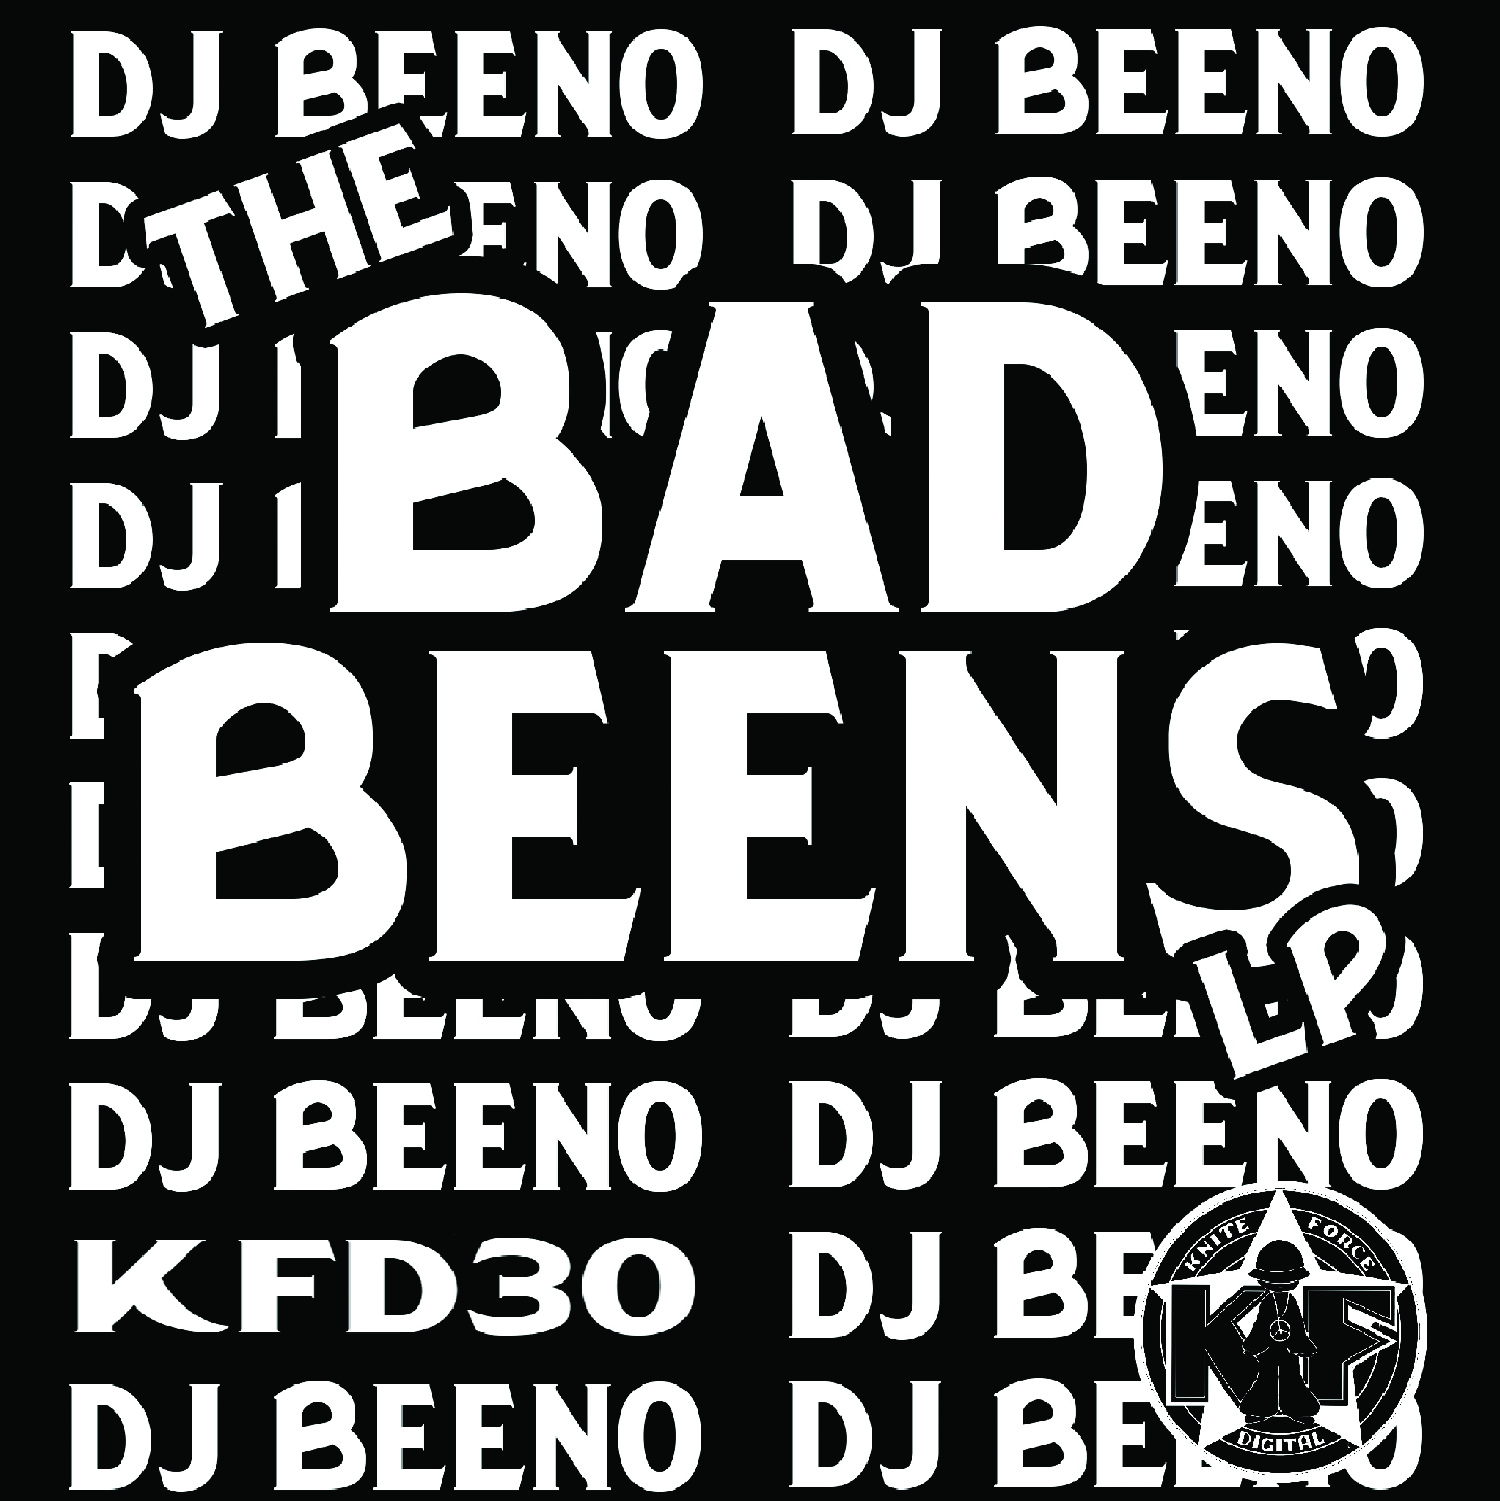 [KFD030] Dj Beeno - The Bad Beens LP (Digital Only)